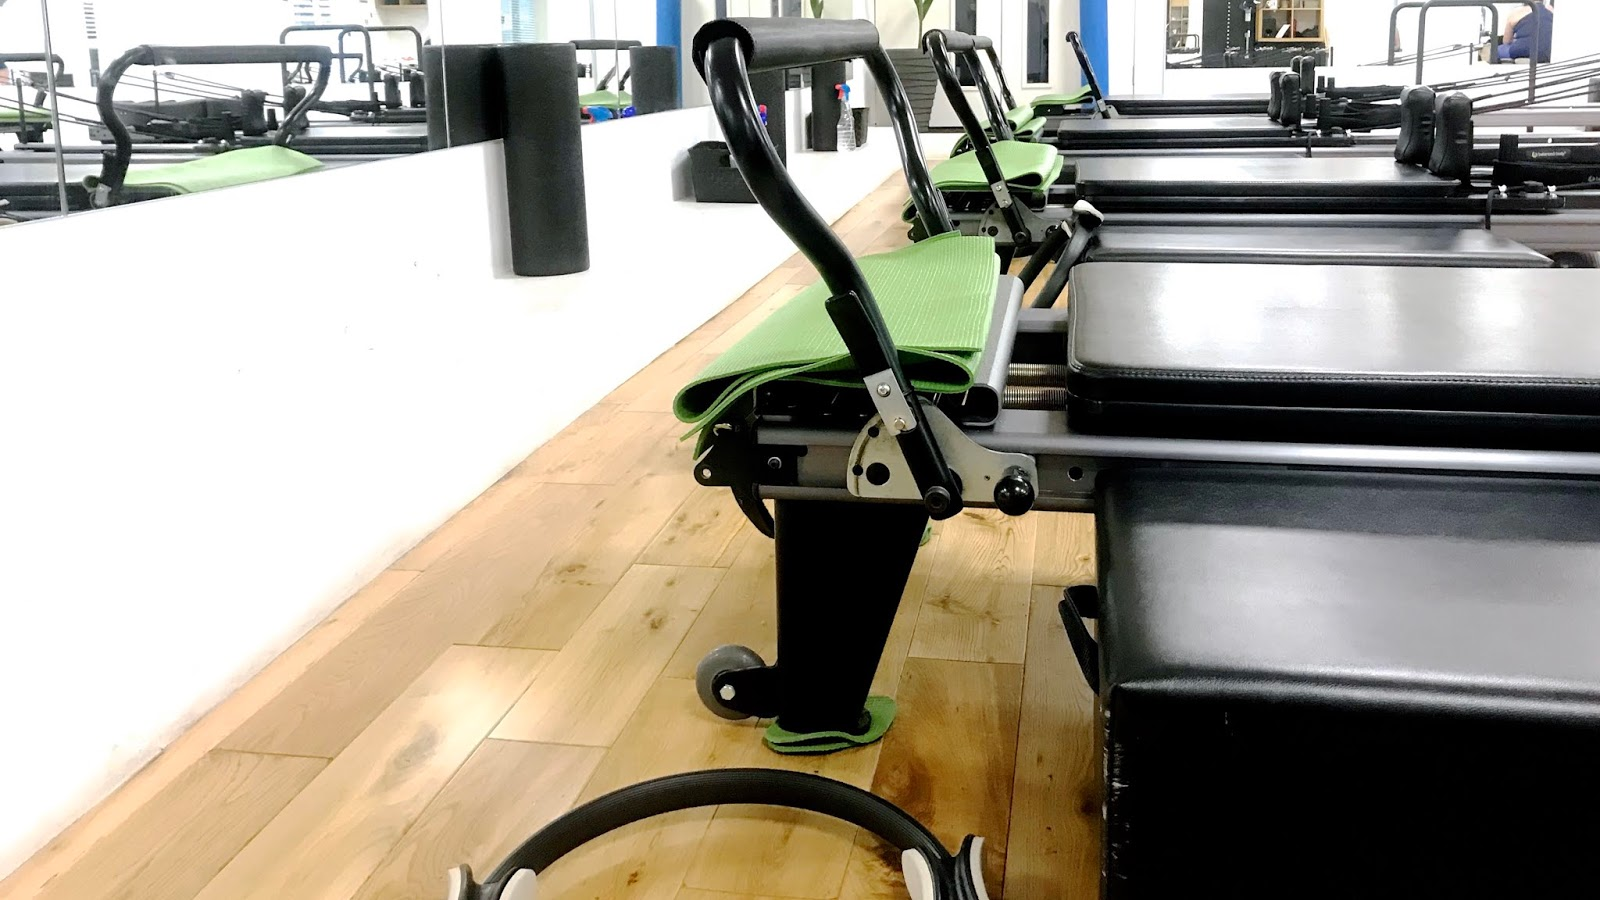 Pilates reformers and equipment